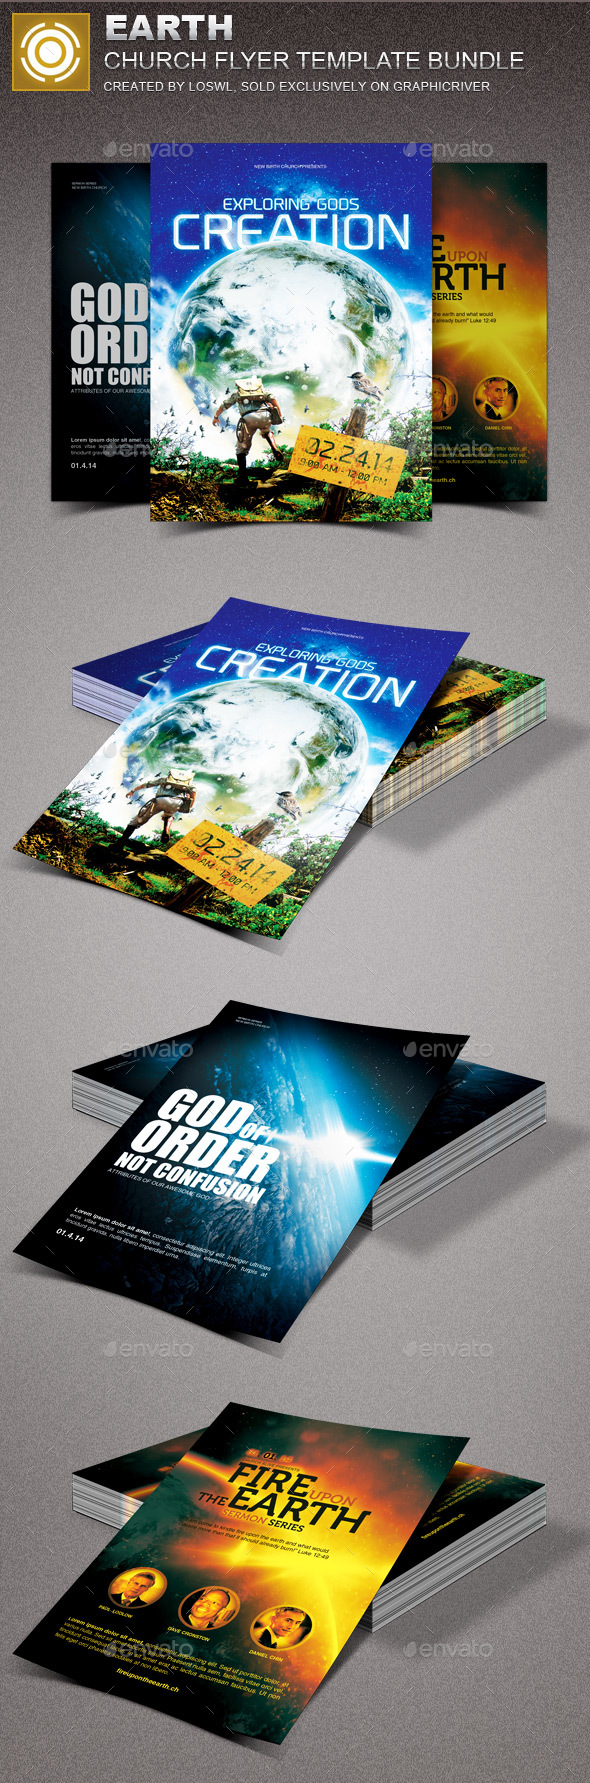 Earth Church Marketing Flyer Template Bundle - Church Flyers